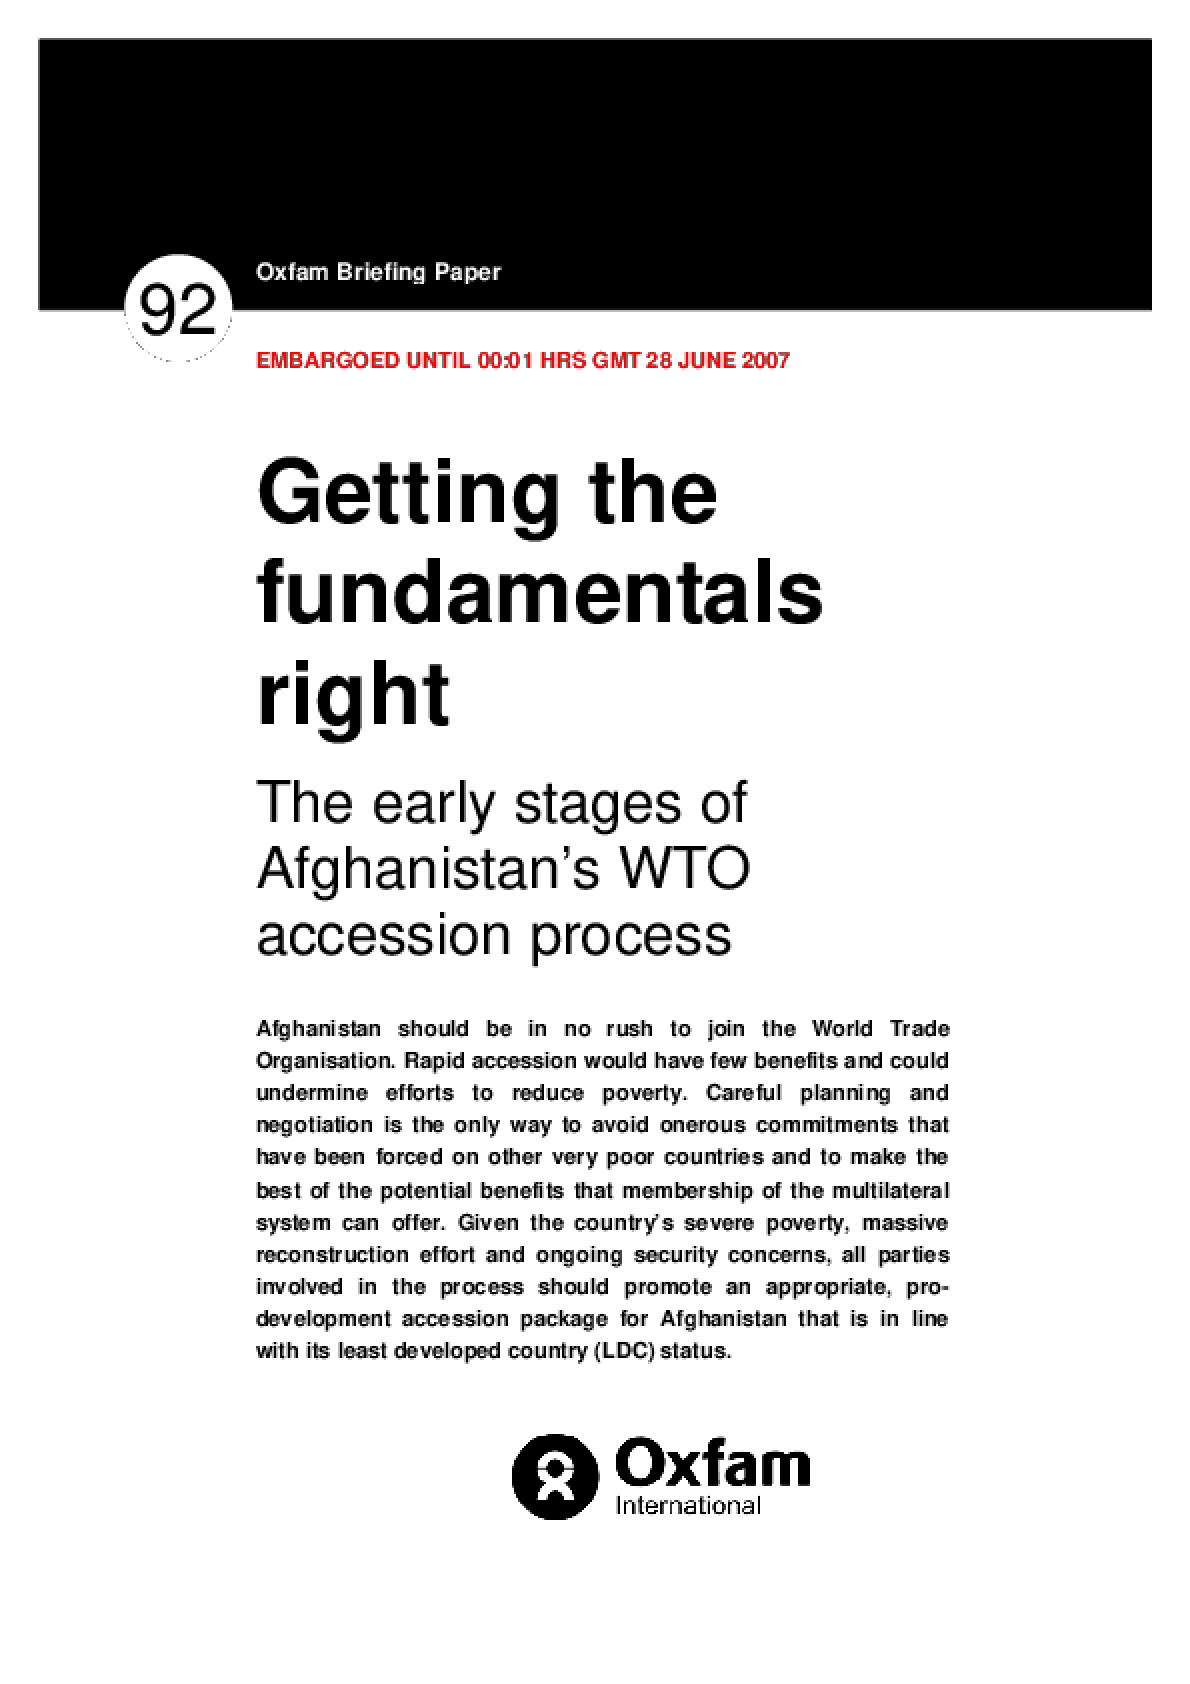 Getting the Fundamentals Right: The Early Stages of Afghanistan's WTO Accession Process